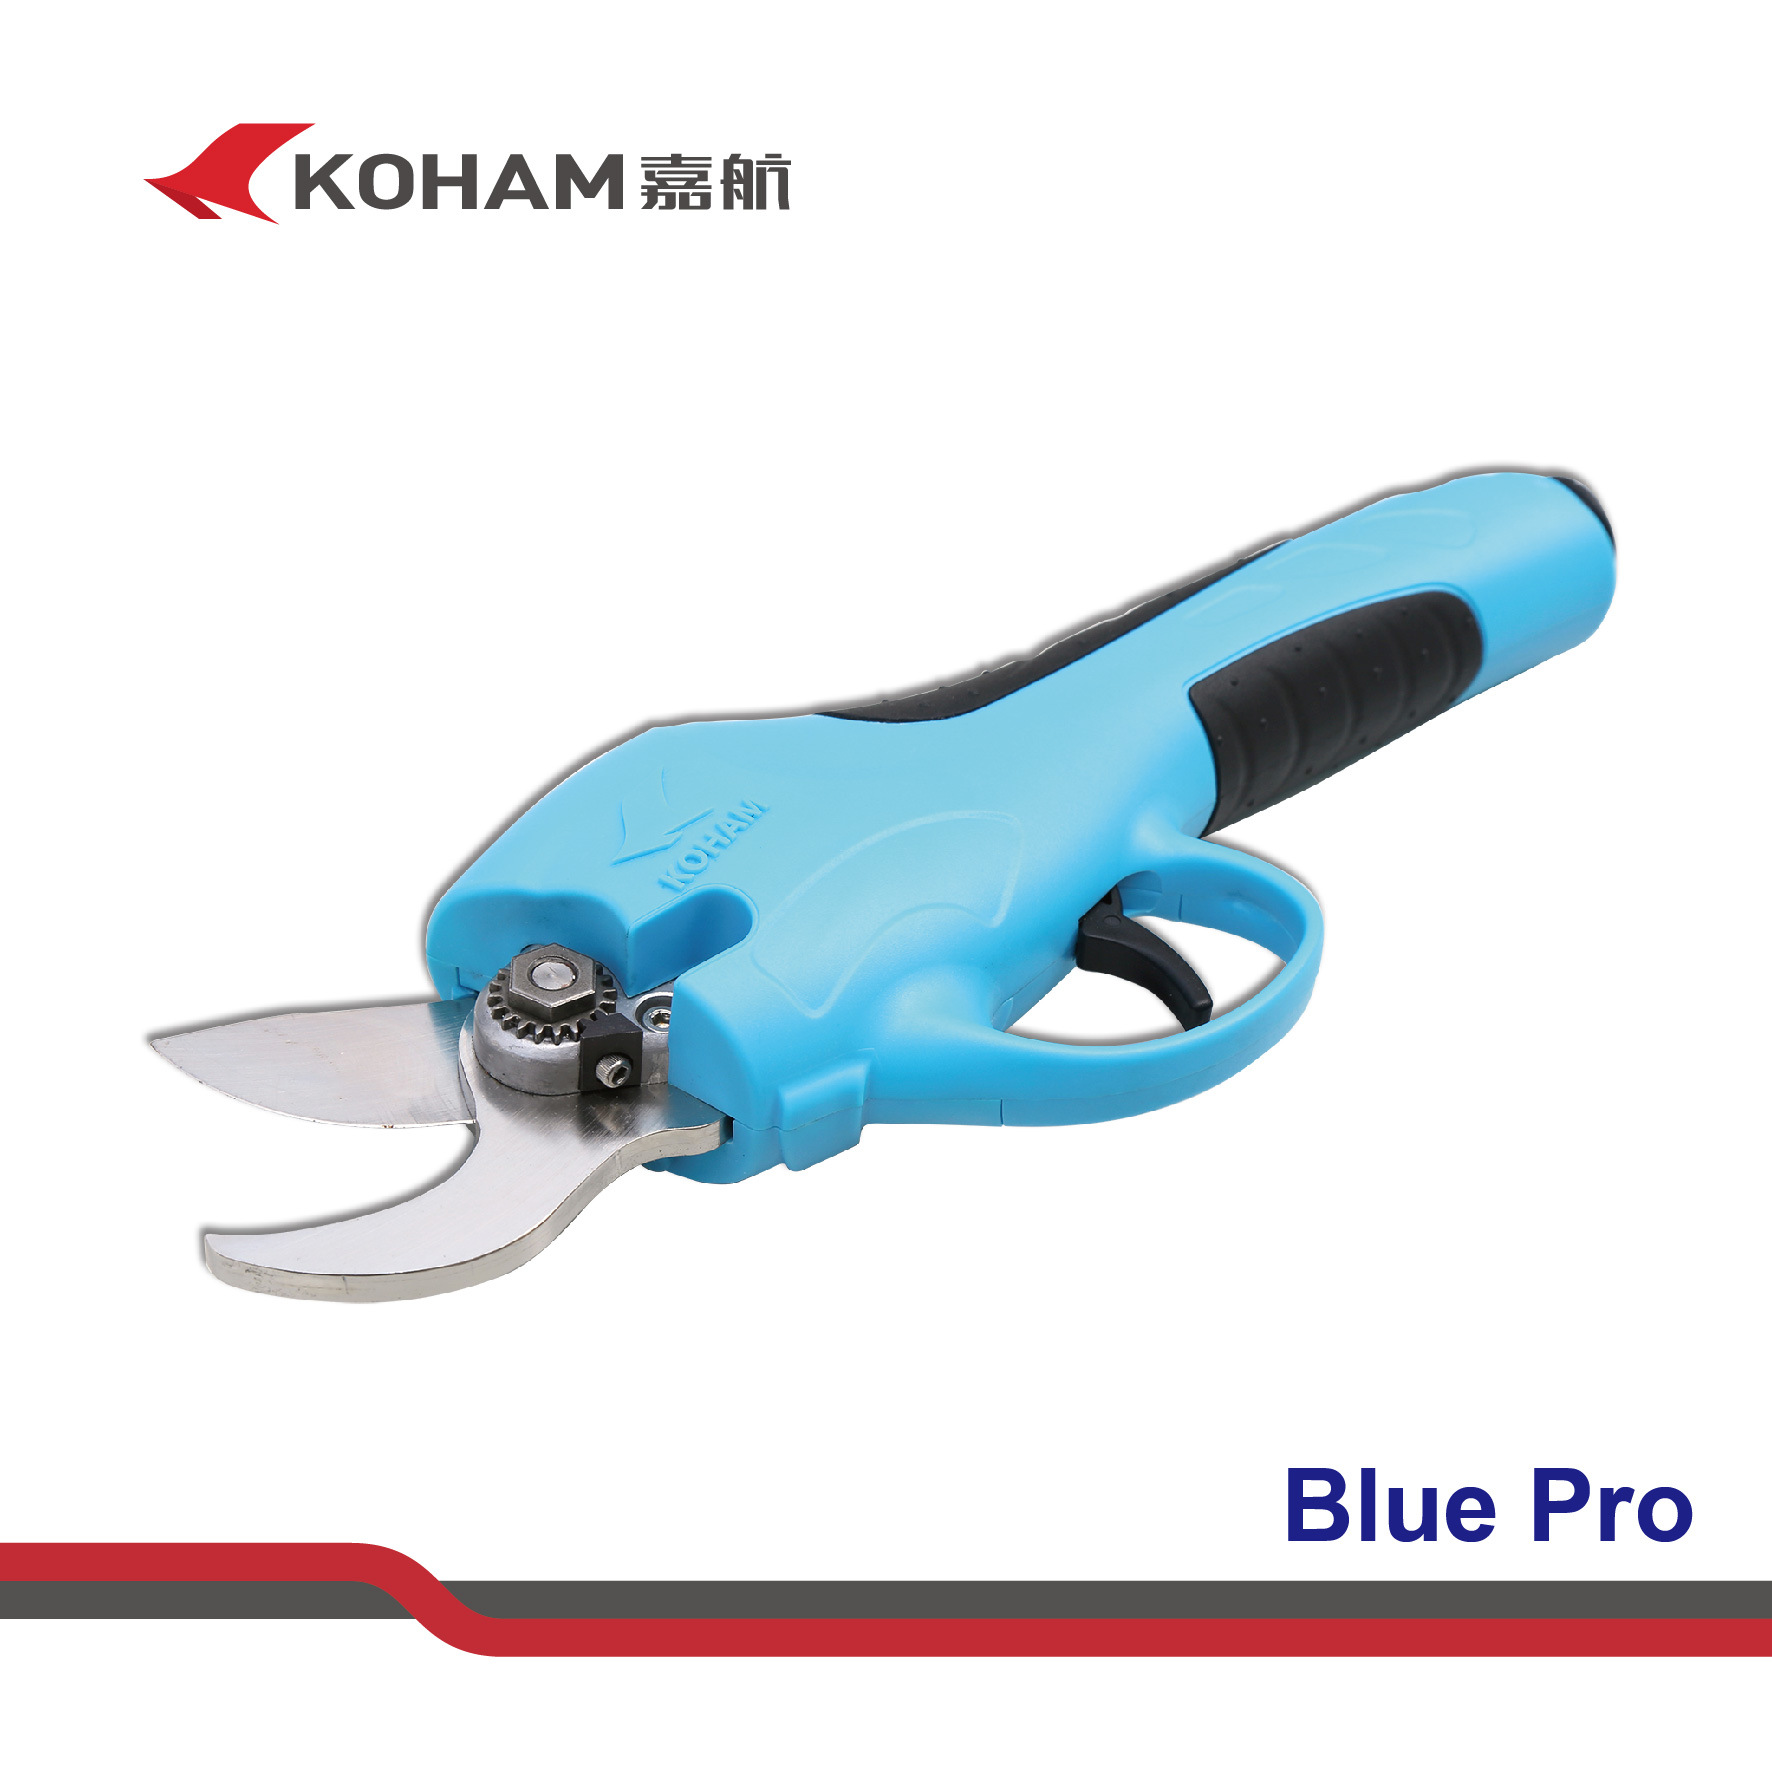 Koham 100kg Shearing Force Hedge Trimmer Electric Tools